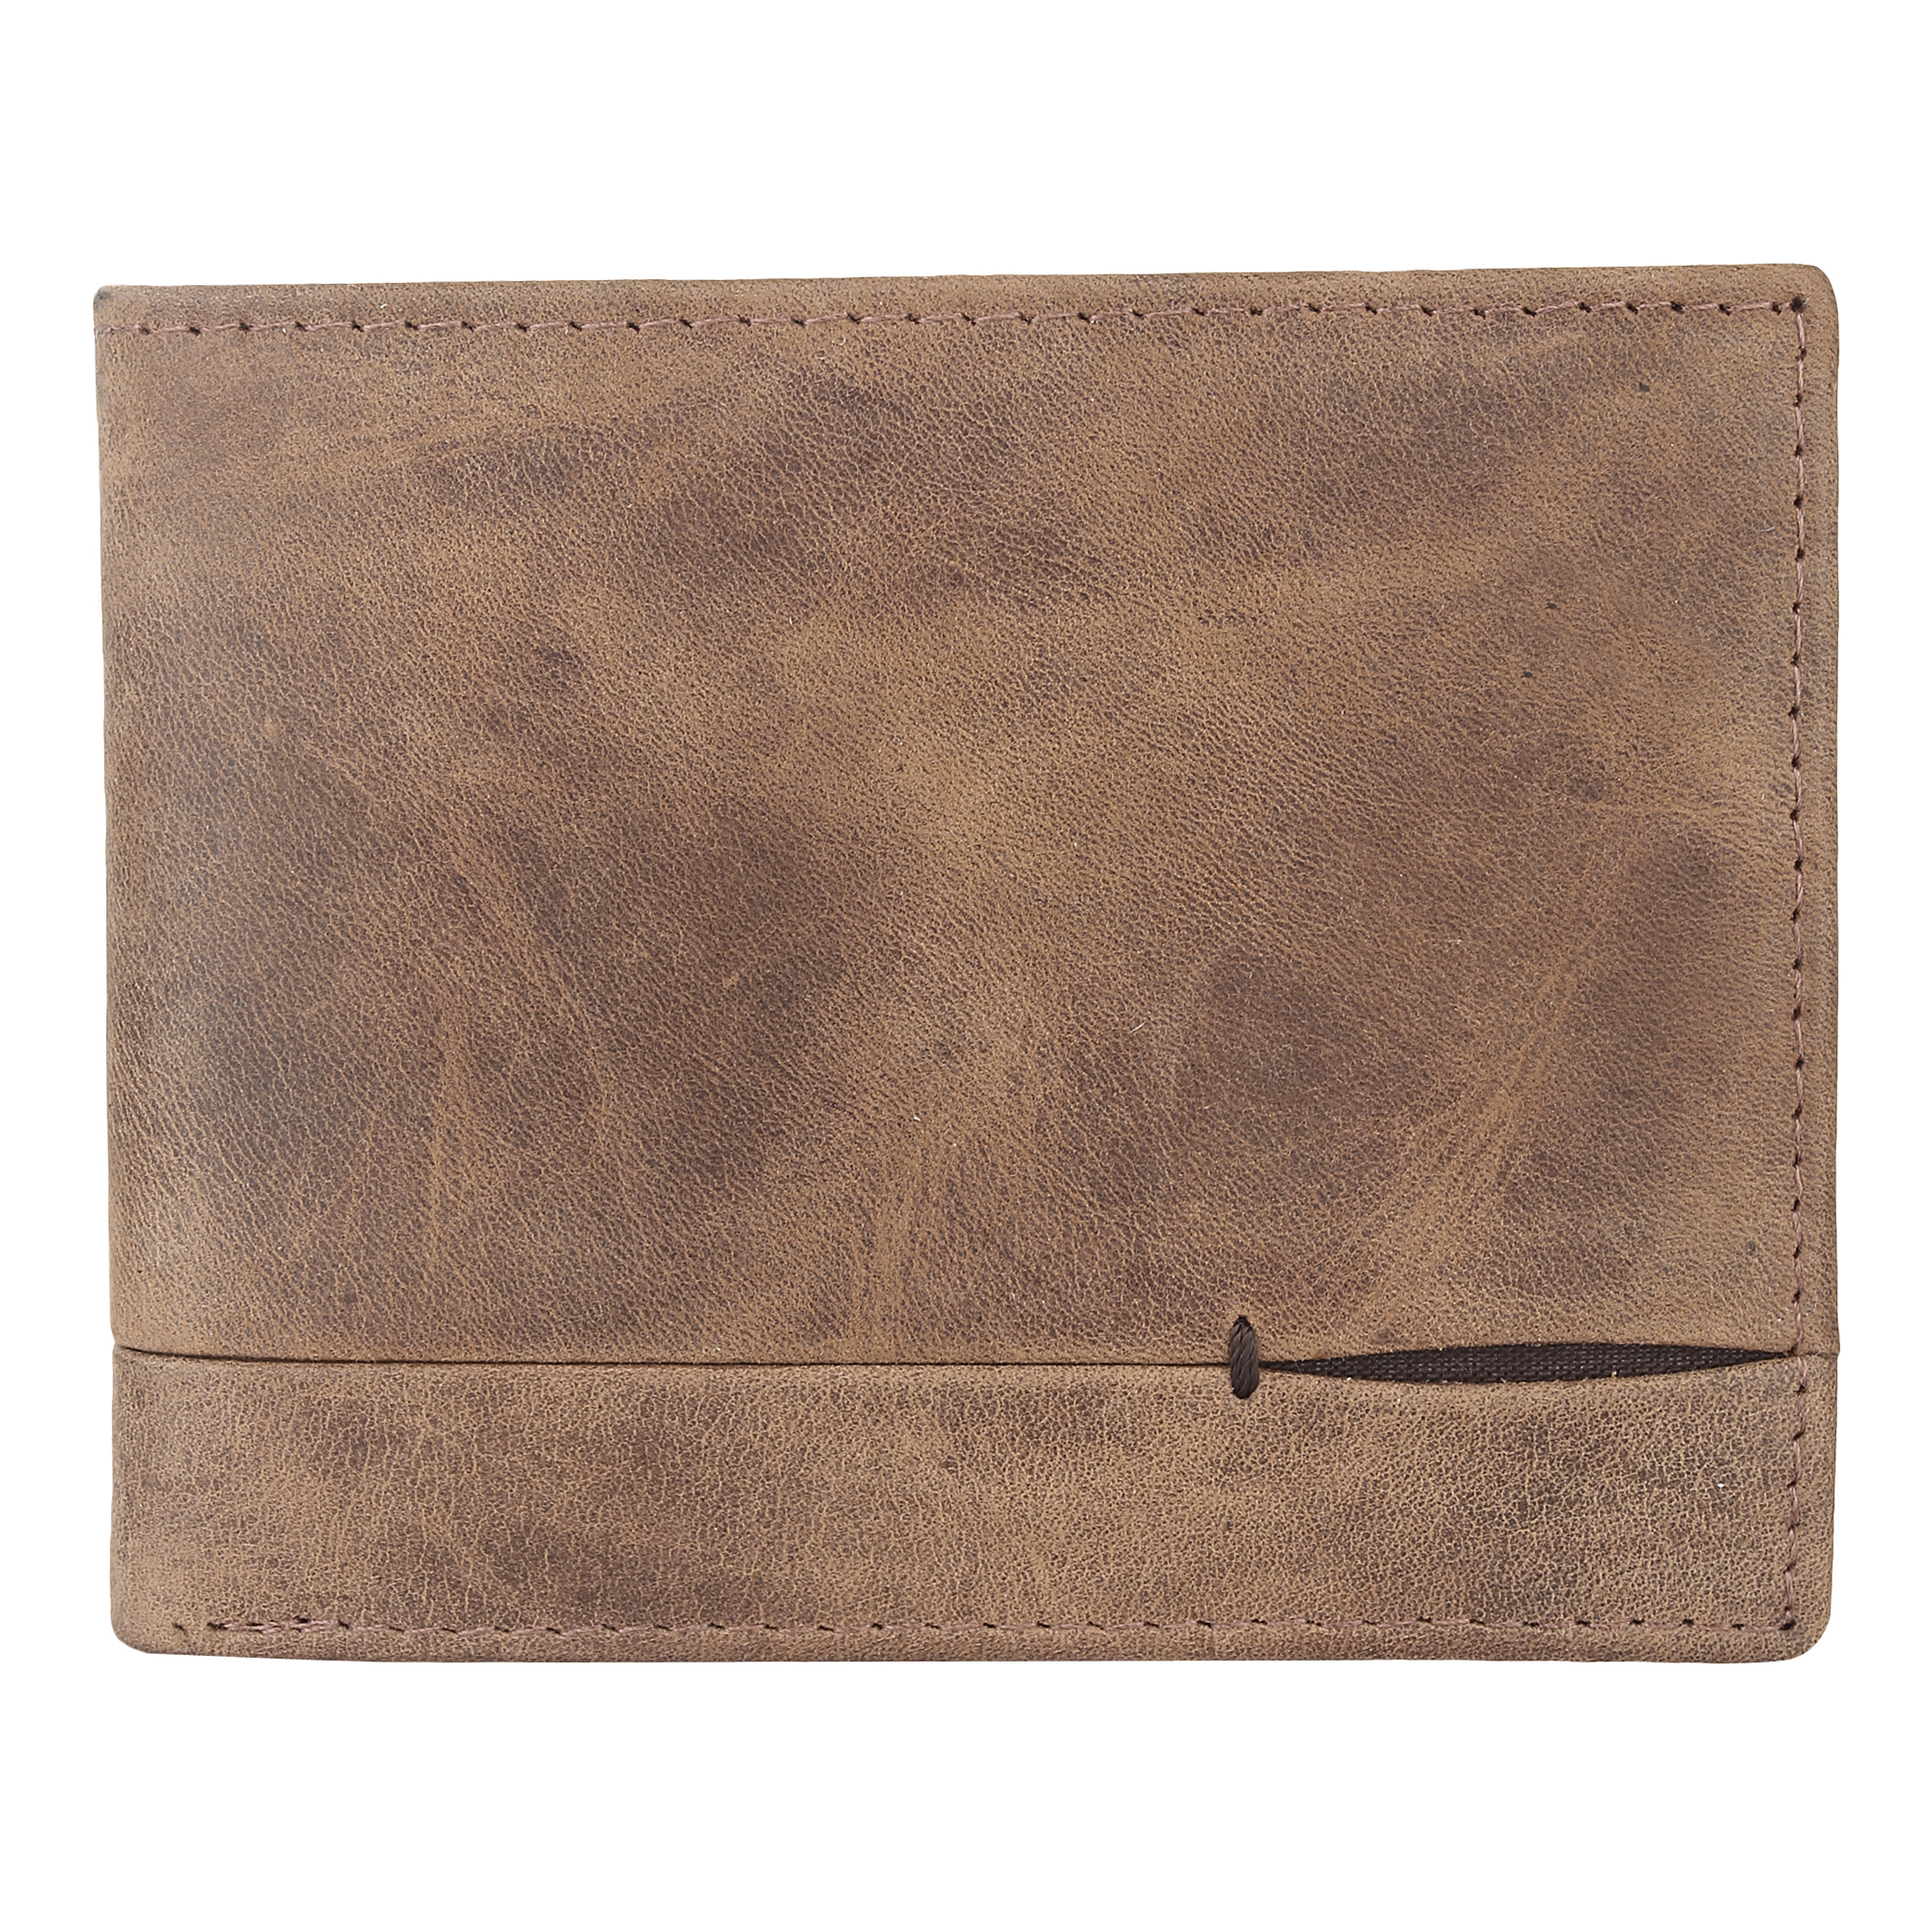 Leather Wallets Manufacturers in Palermo, Leather Wallets Suppliers in Palermo, Leather Wallets Wholesalers in Palermo, Leather Wallets Traders in Palermo